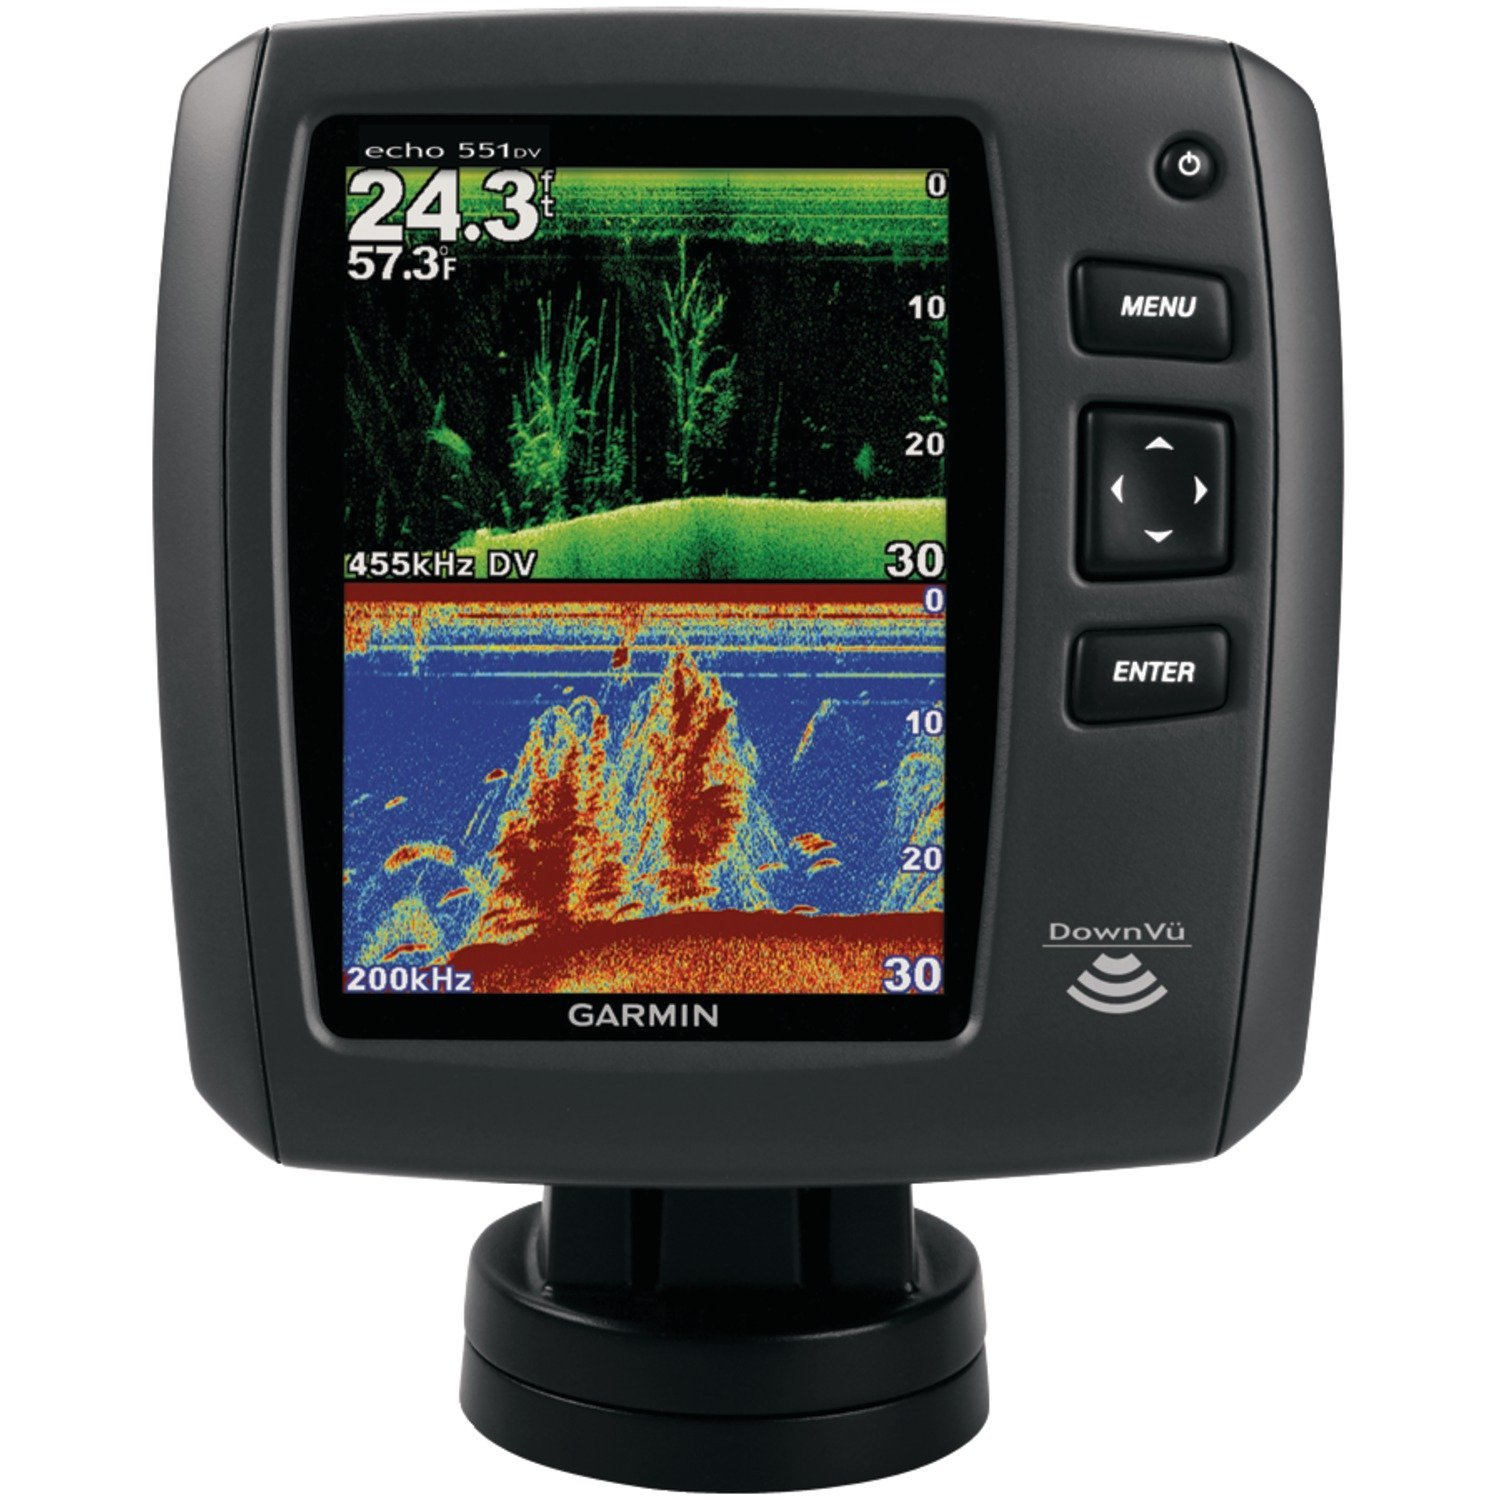 garmin echo 551dv review fish finder guy rh fishfinderguy com Garmin 178C Sounder Garmin 500C Review